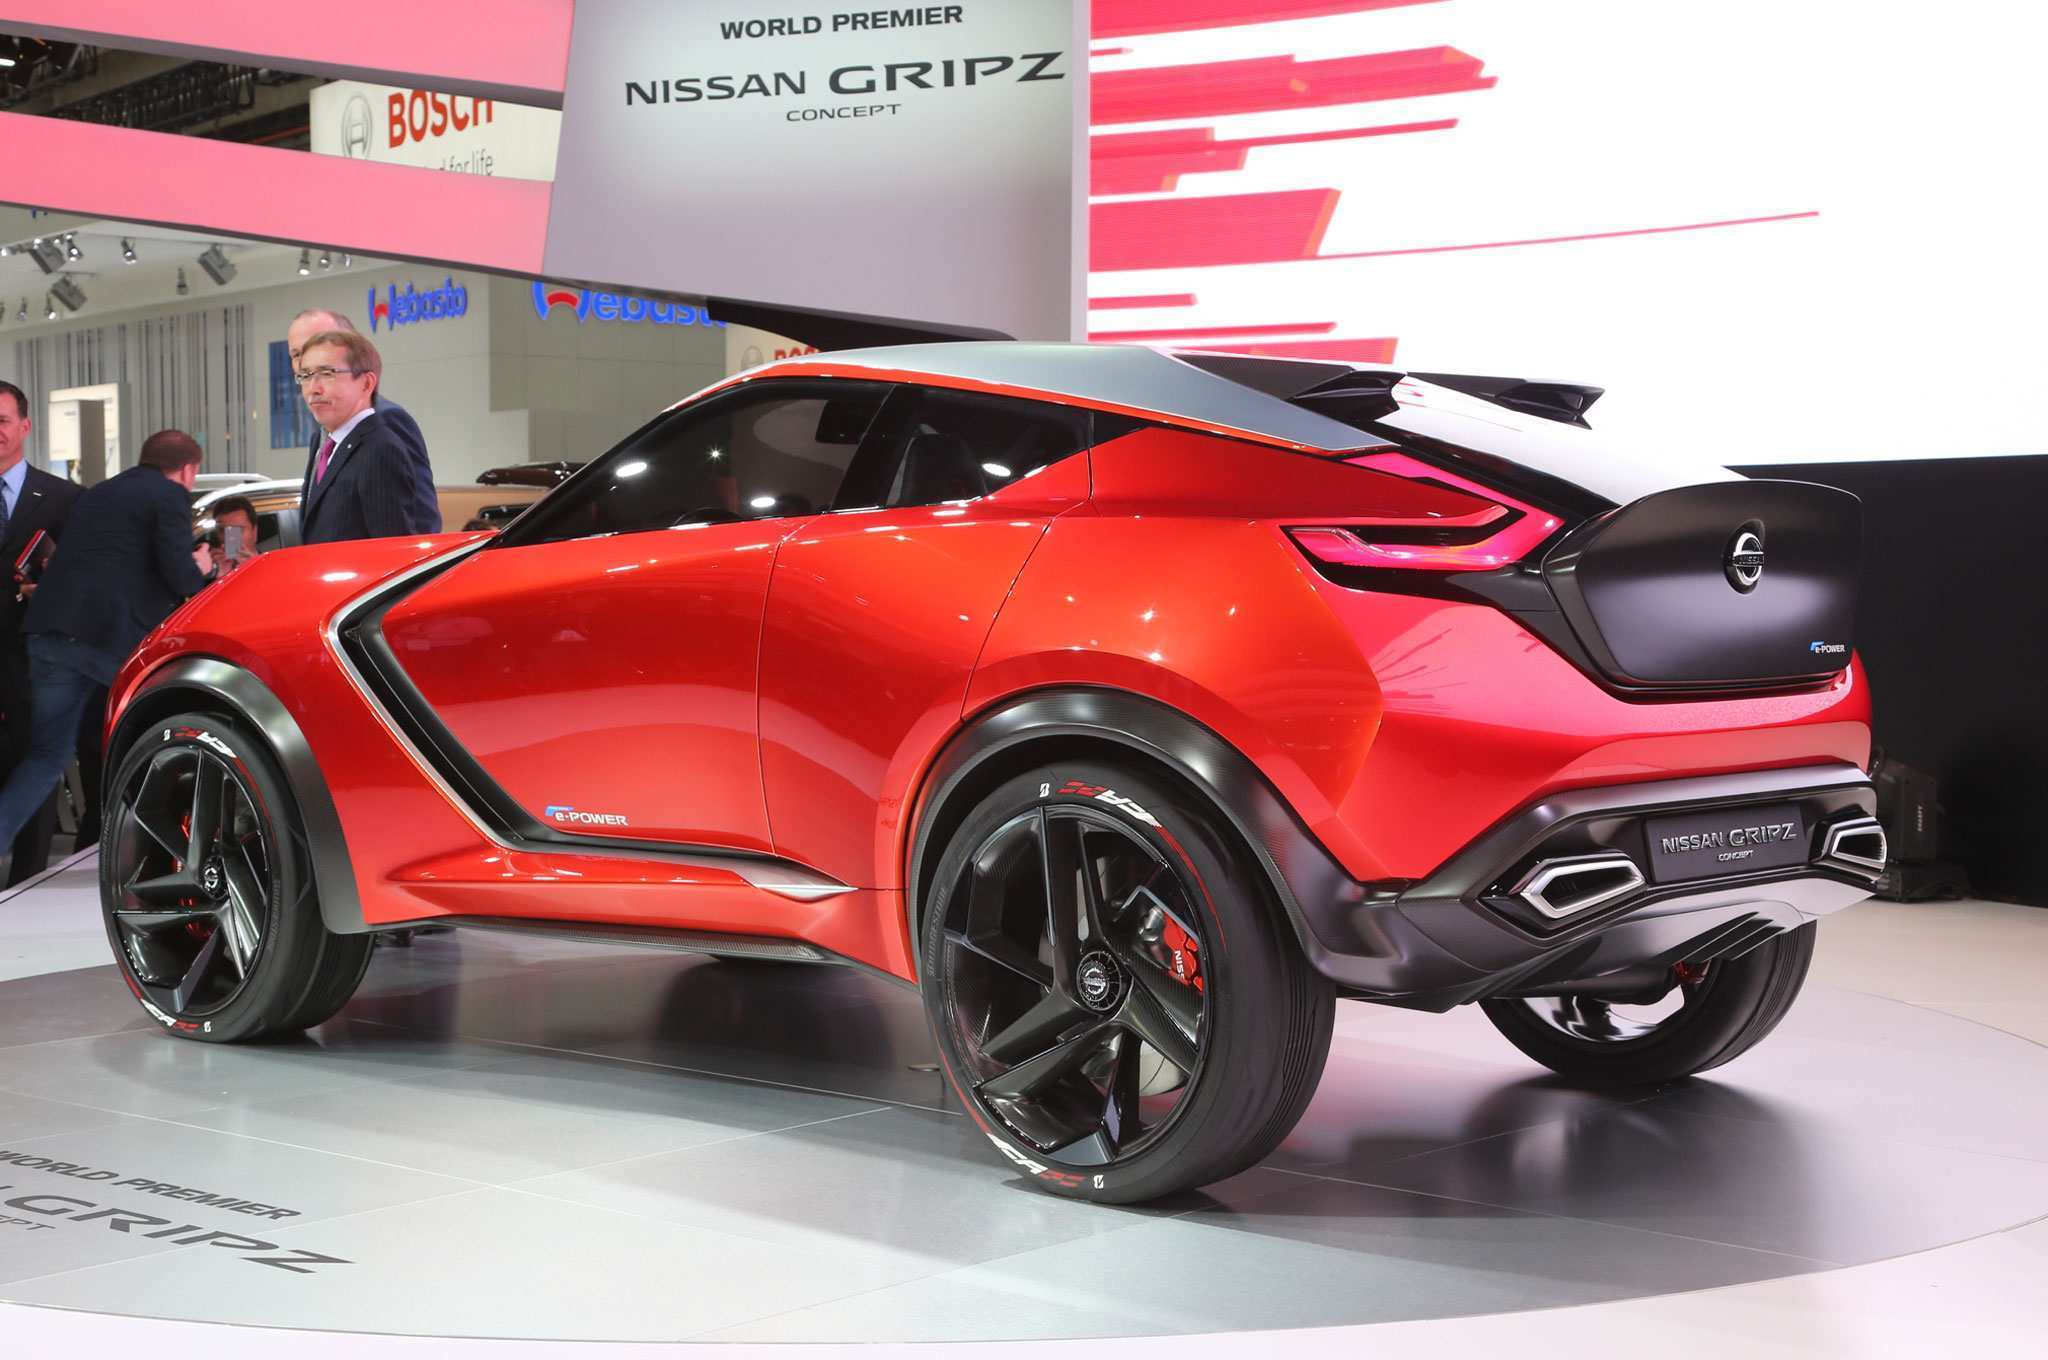 87 Great 2019 Nissan Gripz Specs with 2019 Nissan Gripz